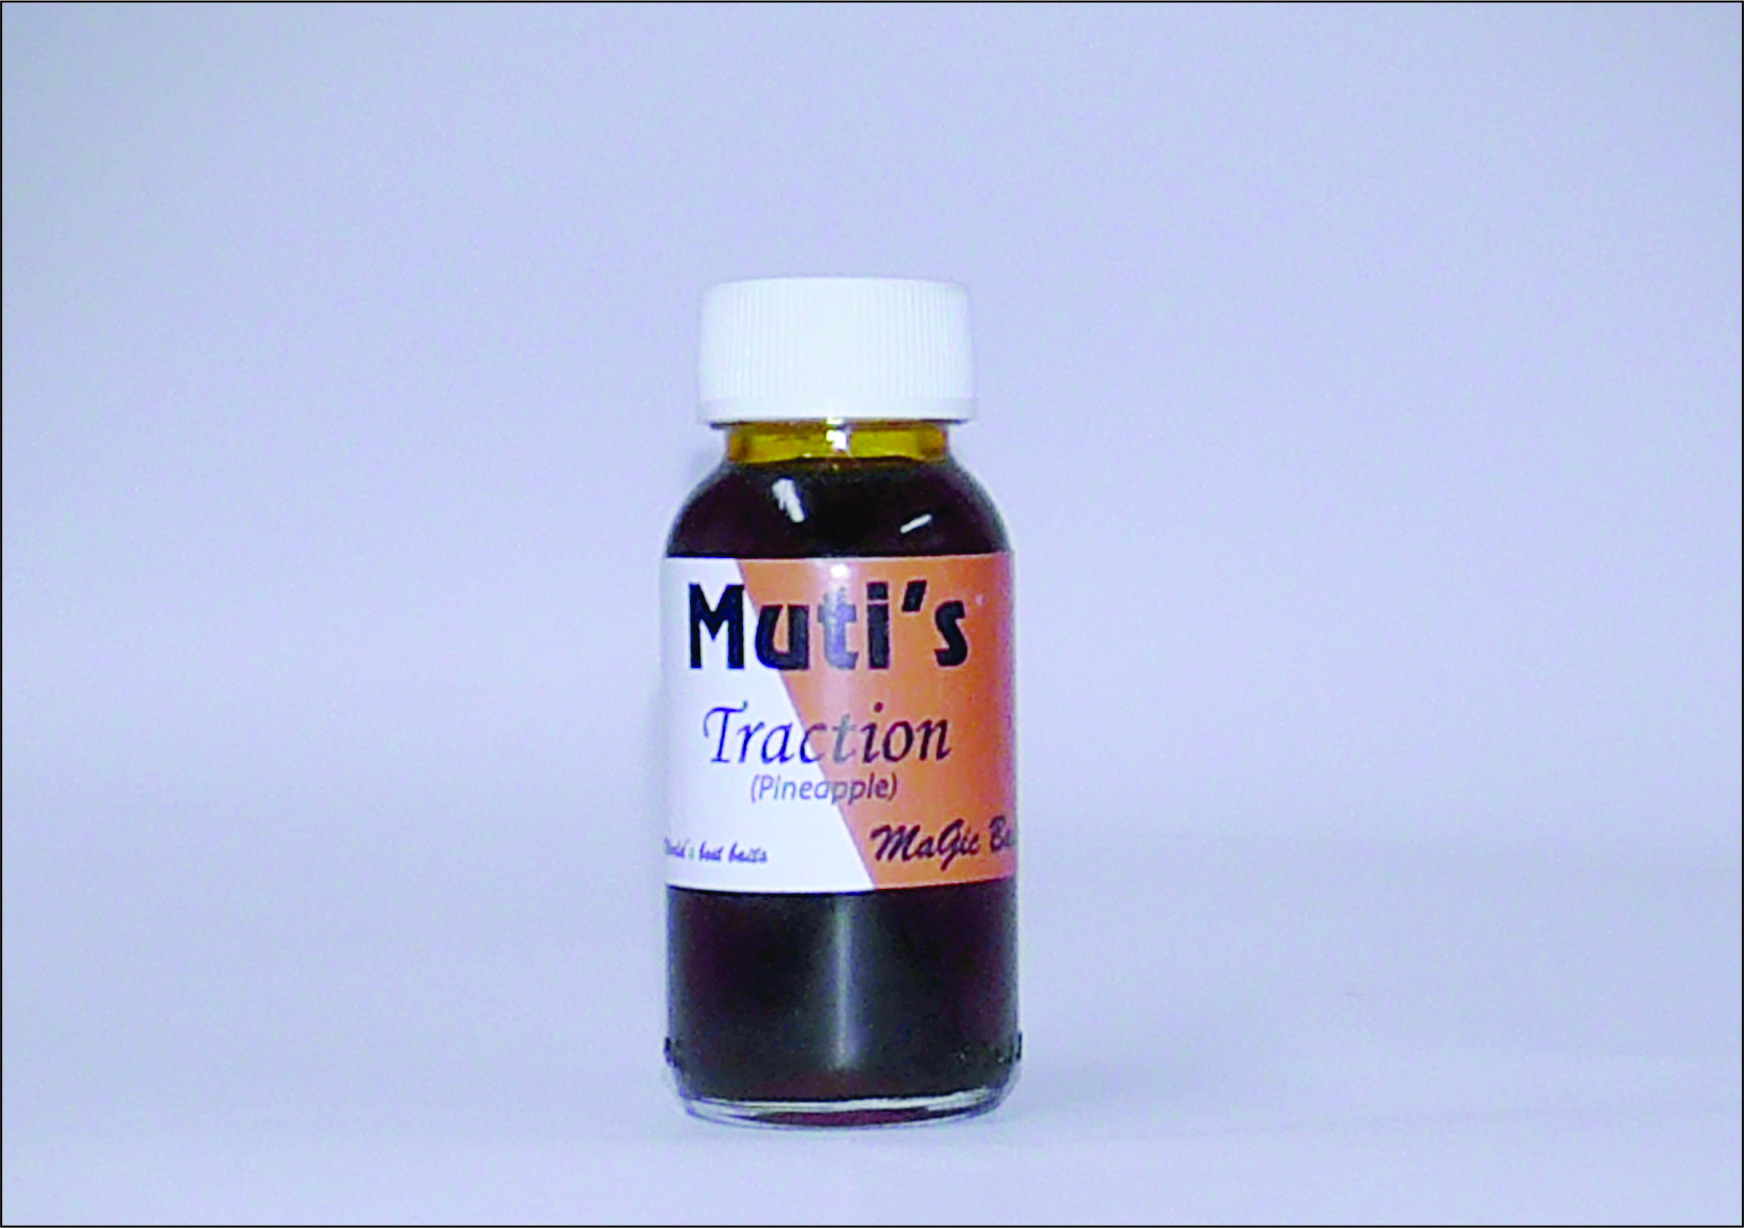 Traction Muti